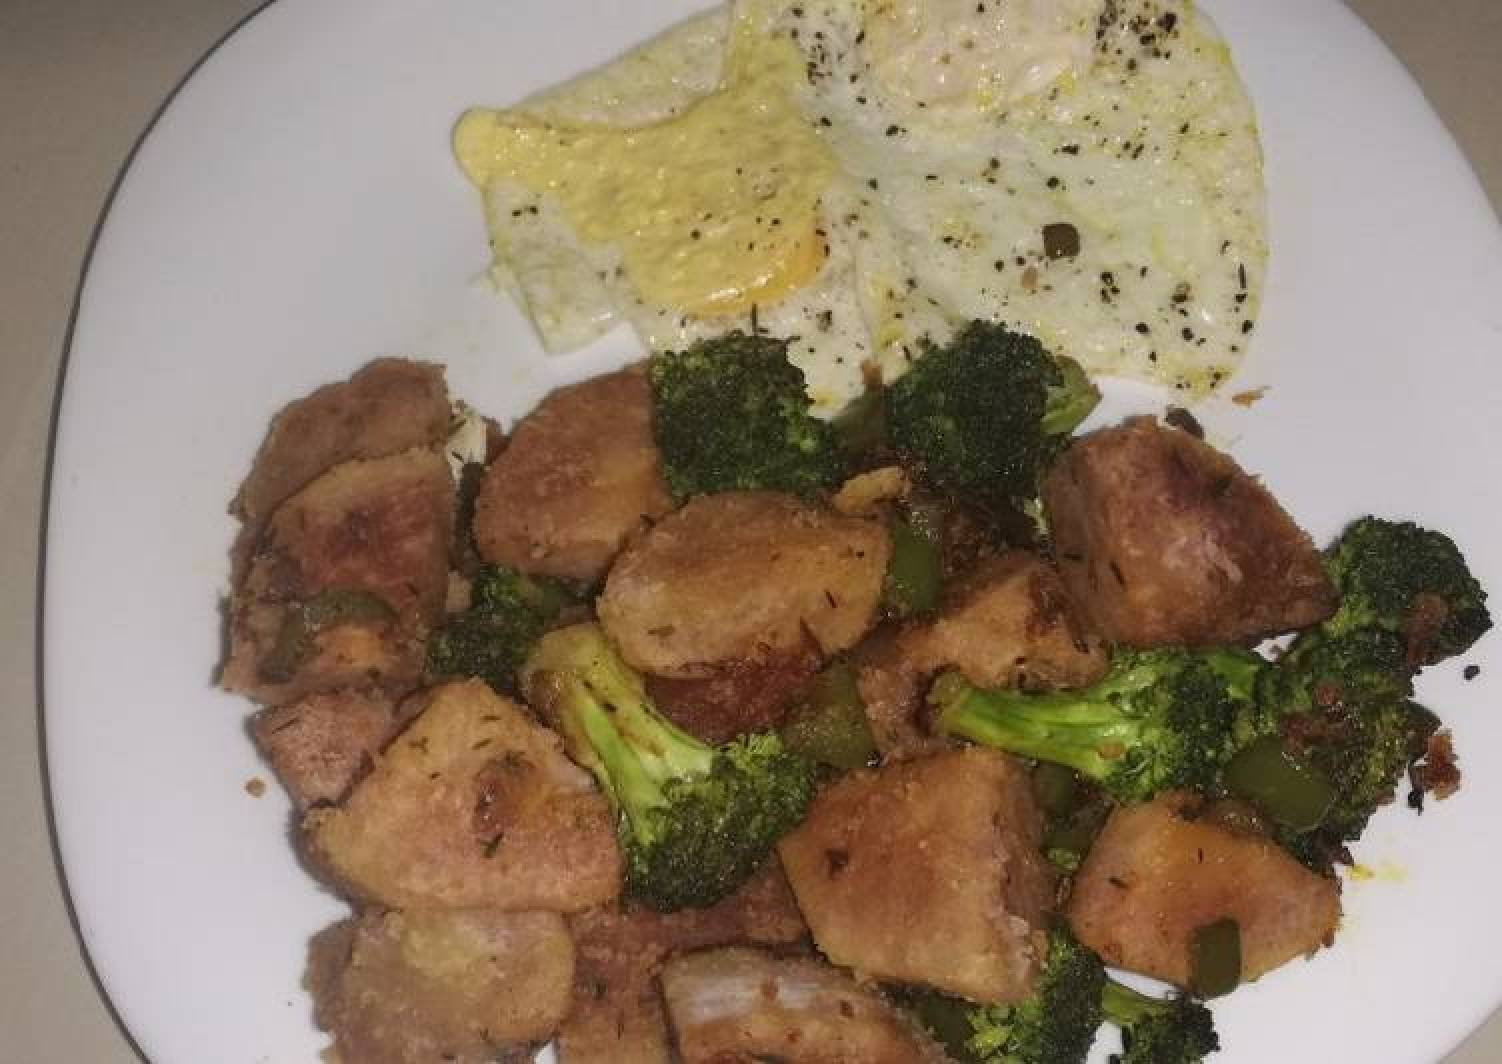 Arrowroot and broccoli stir fry with eggs